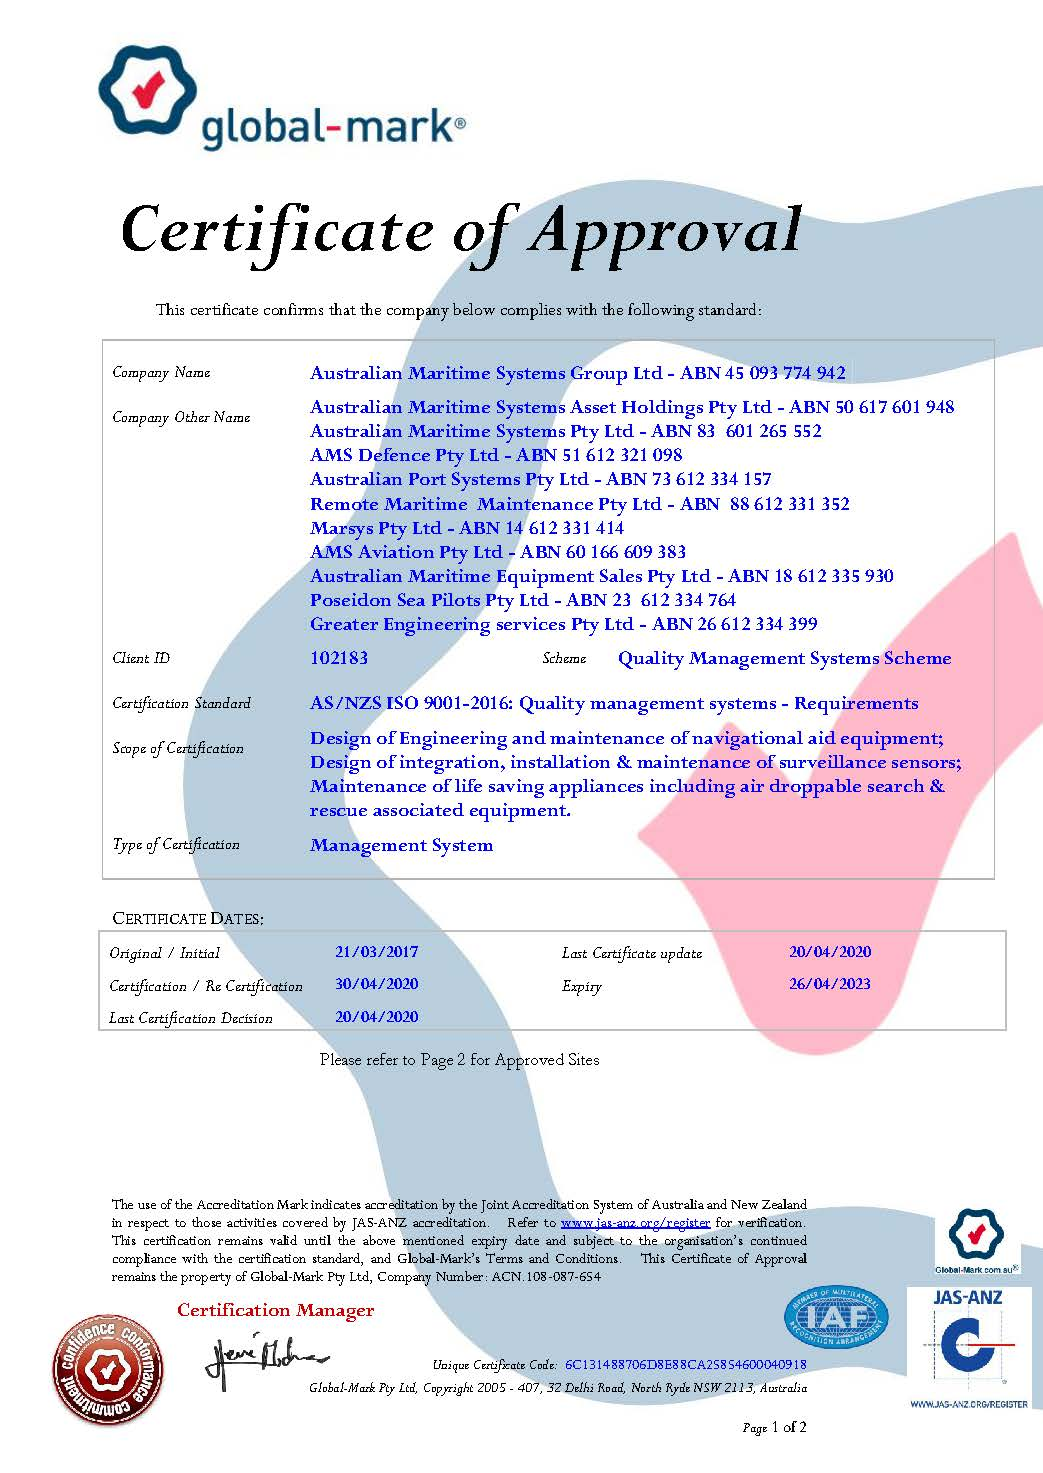 AS/NZS ISO 9001-2016: Quality management systems - Requirements